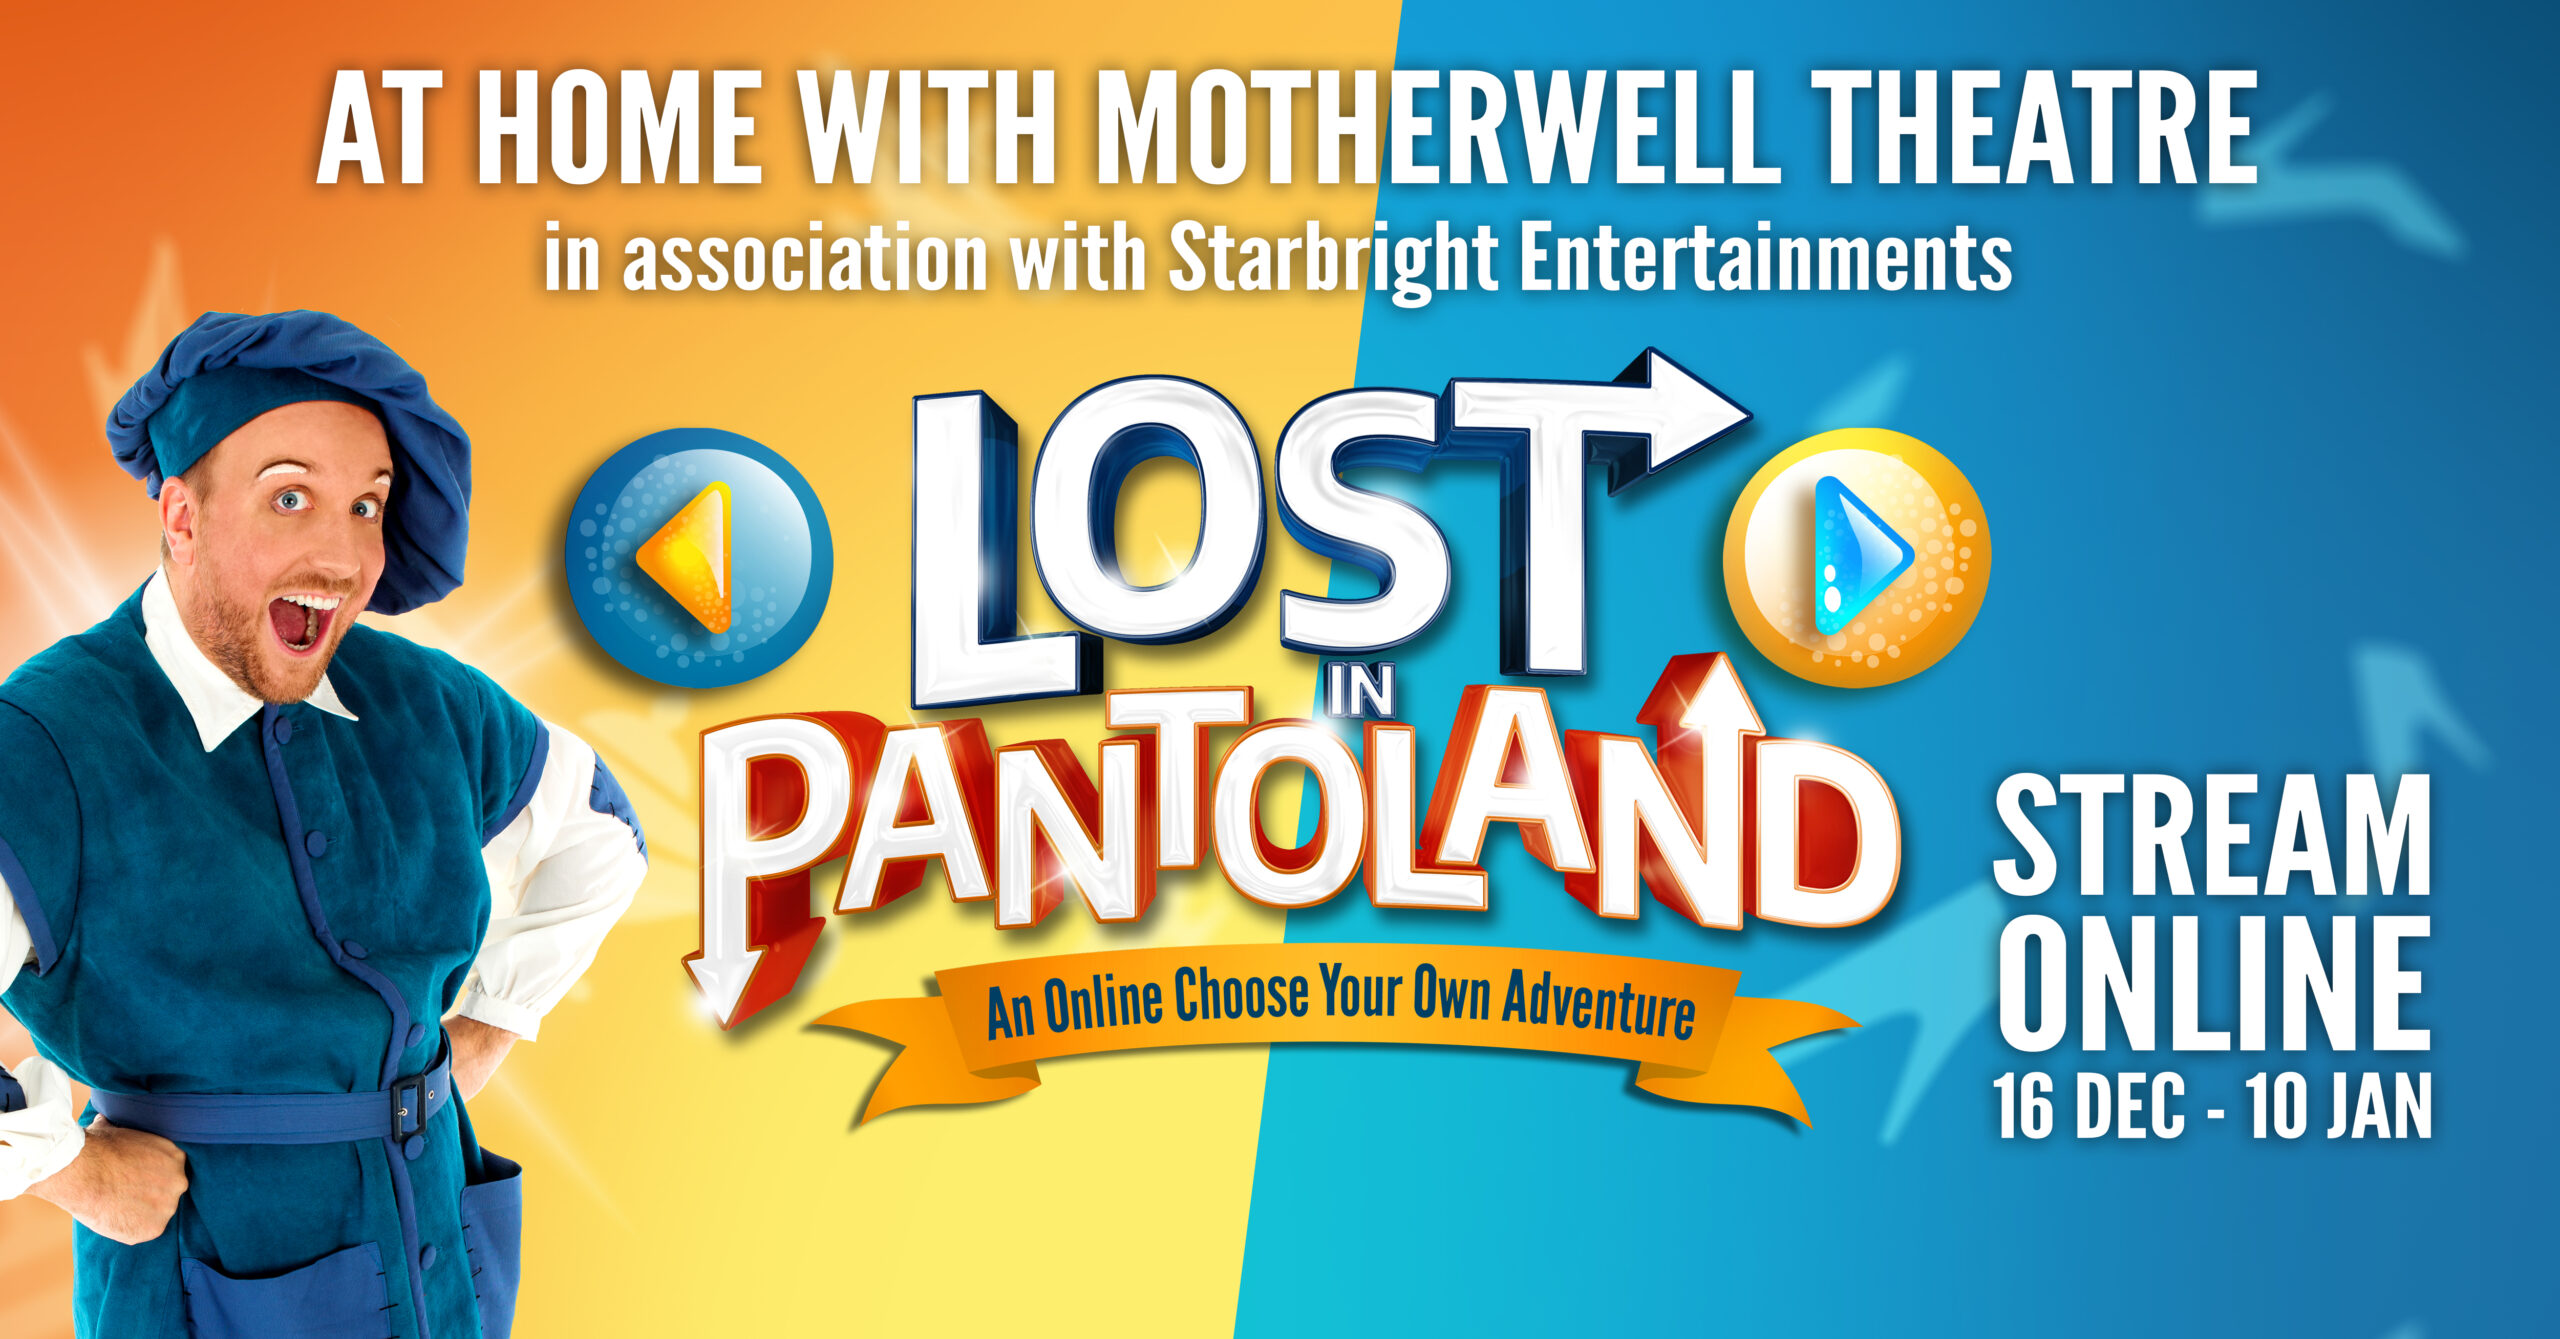 Lost in Pantoland